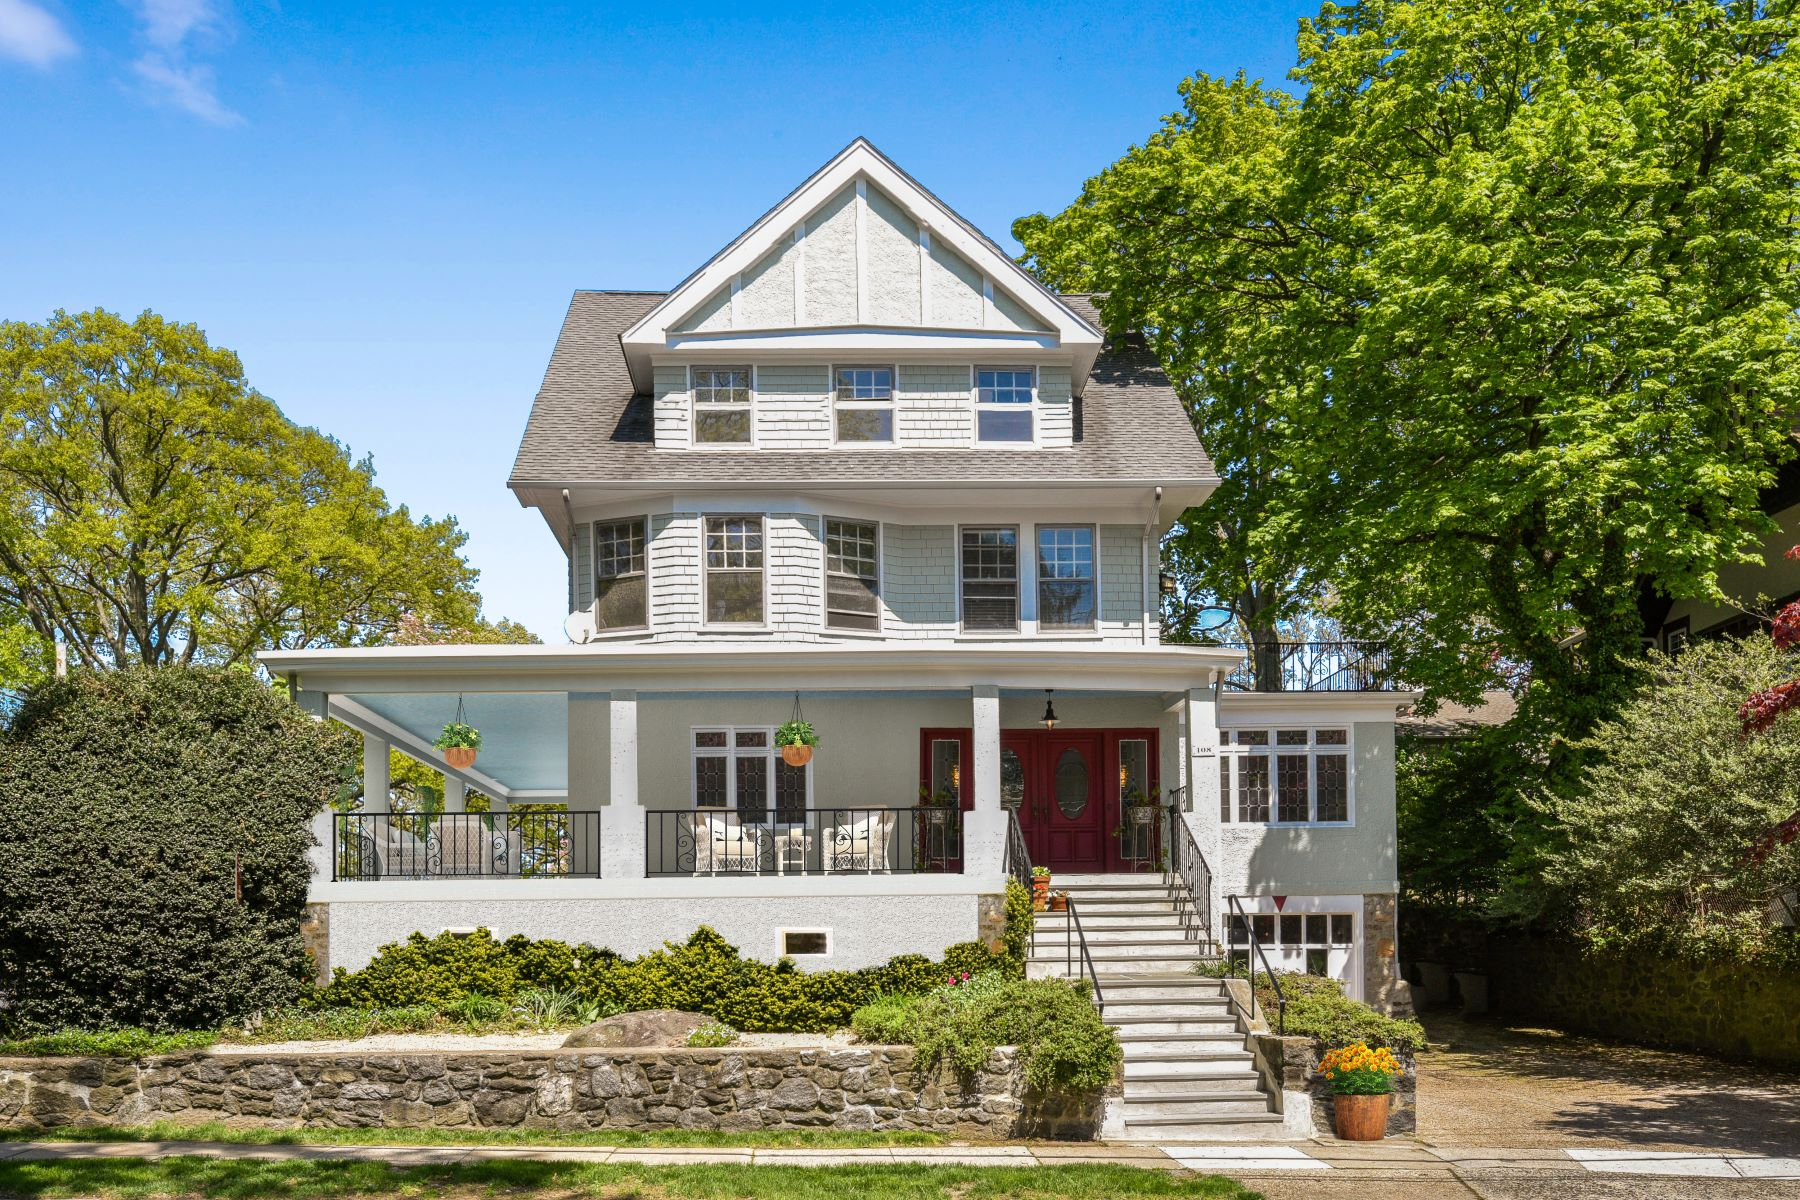 Single Family Homes for Sale at 108 Murray Avenue Larchmont, New York 10538 United States